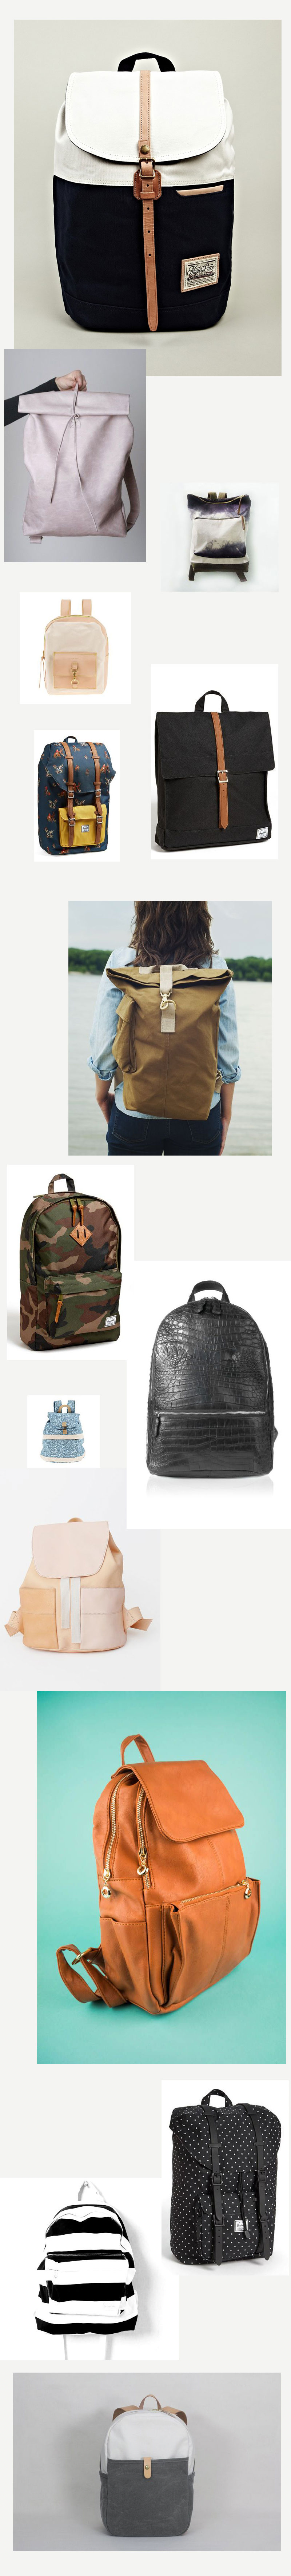 5-Daydreaming-travelbags.jpg